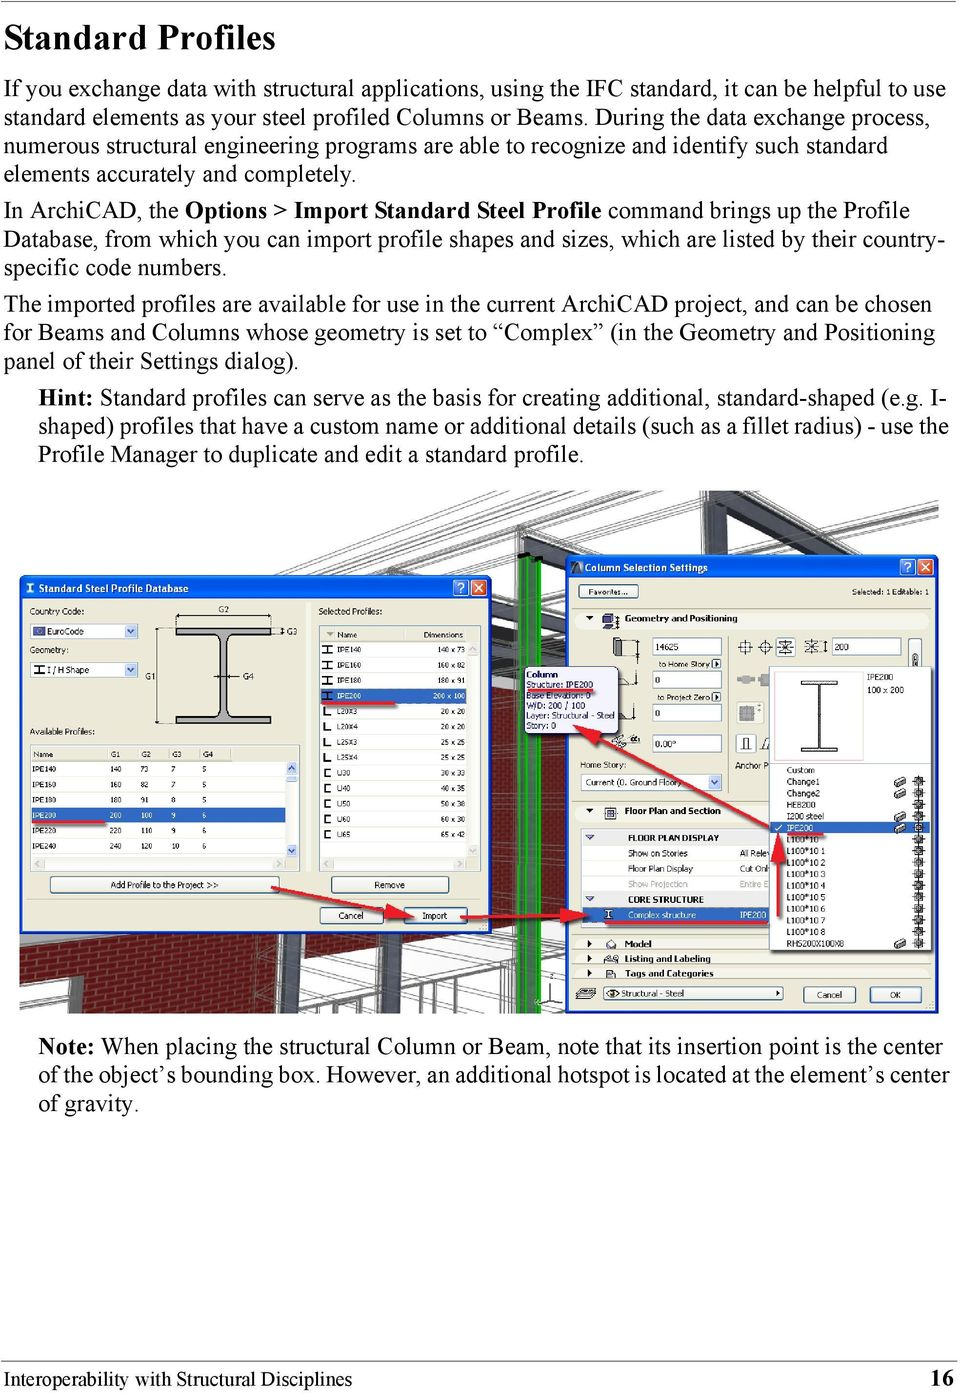 In ArchiCAD, the Options > Import Standard Steel Profile command brings up the Profile Database, from which you can import profile shapes and sizes, which are listed by their countryspecific code